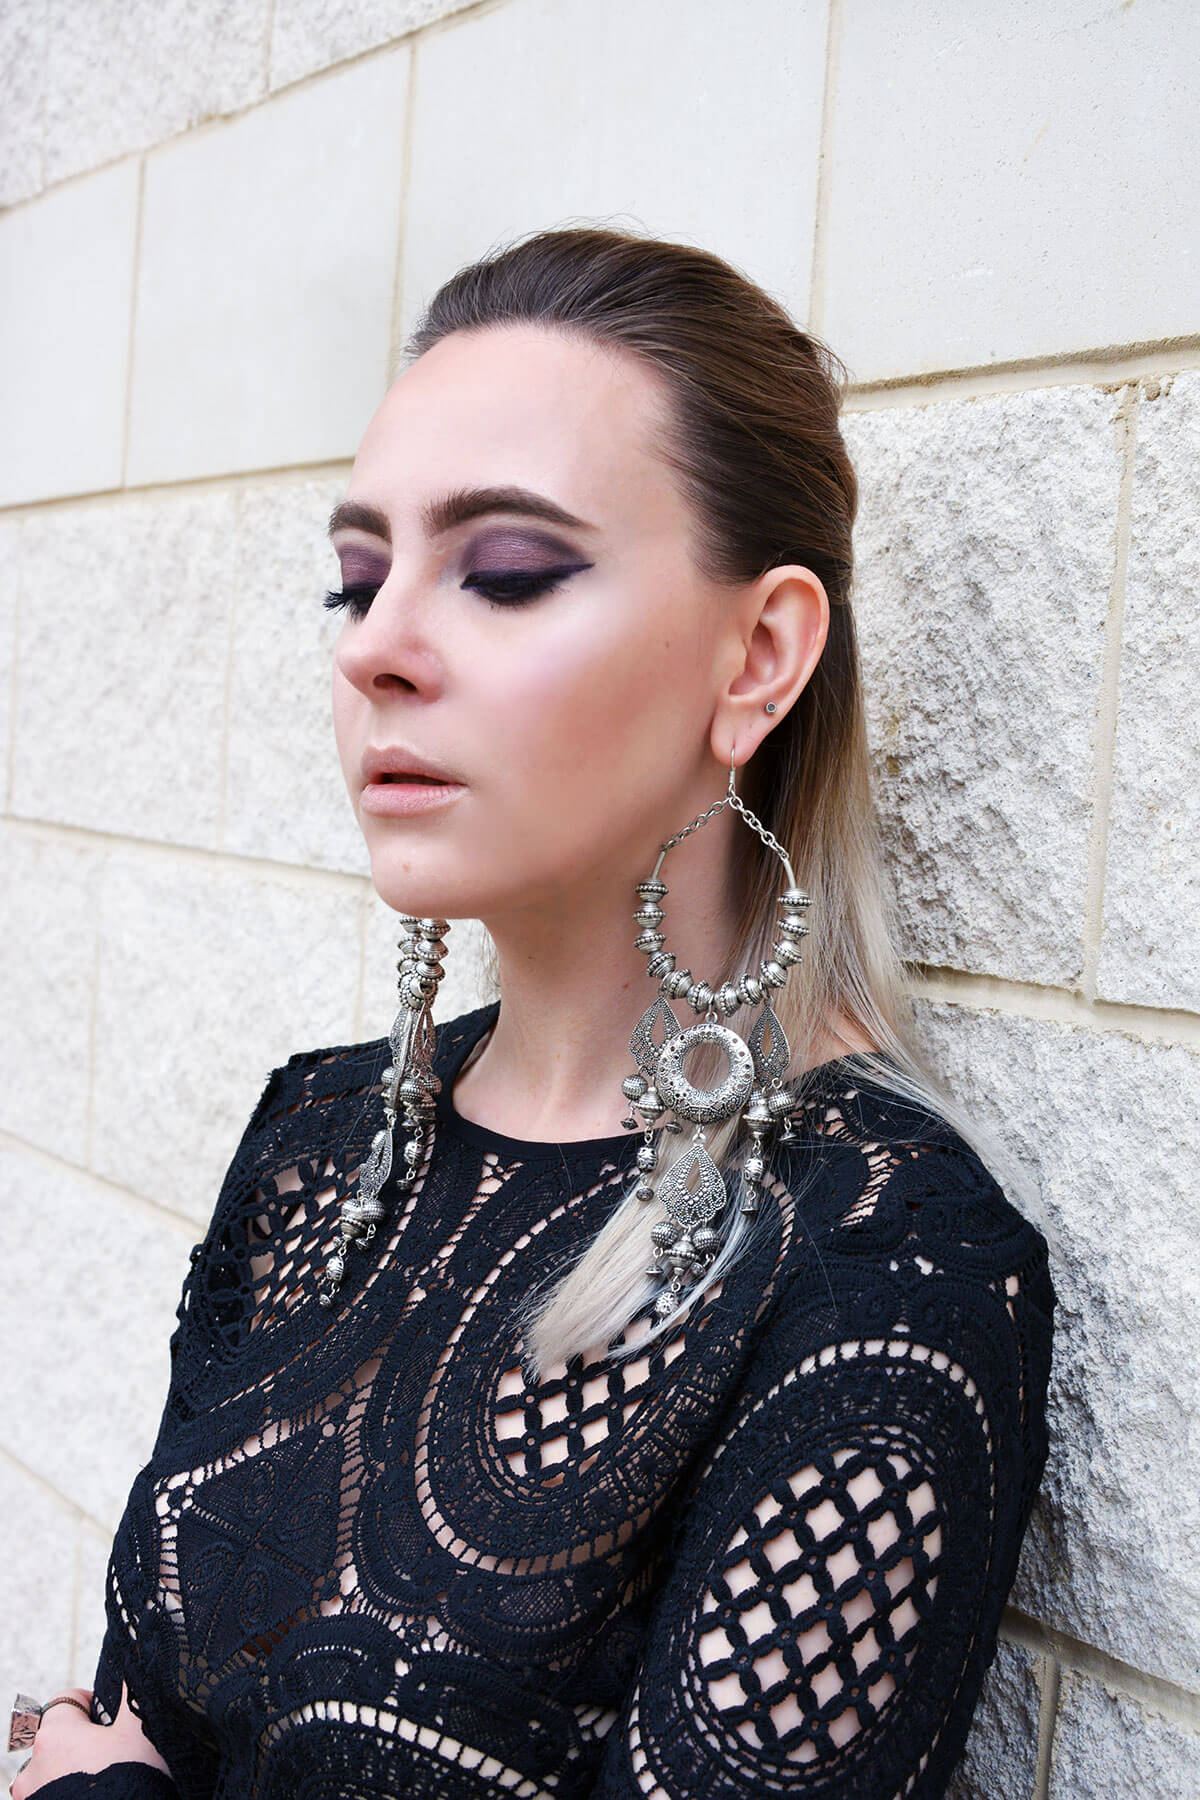 tough chic outfit with chandelier earrings